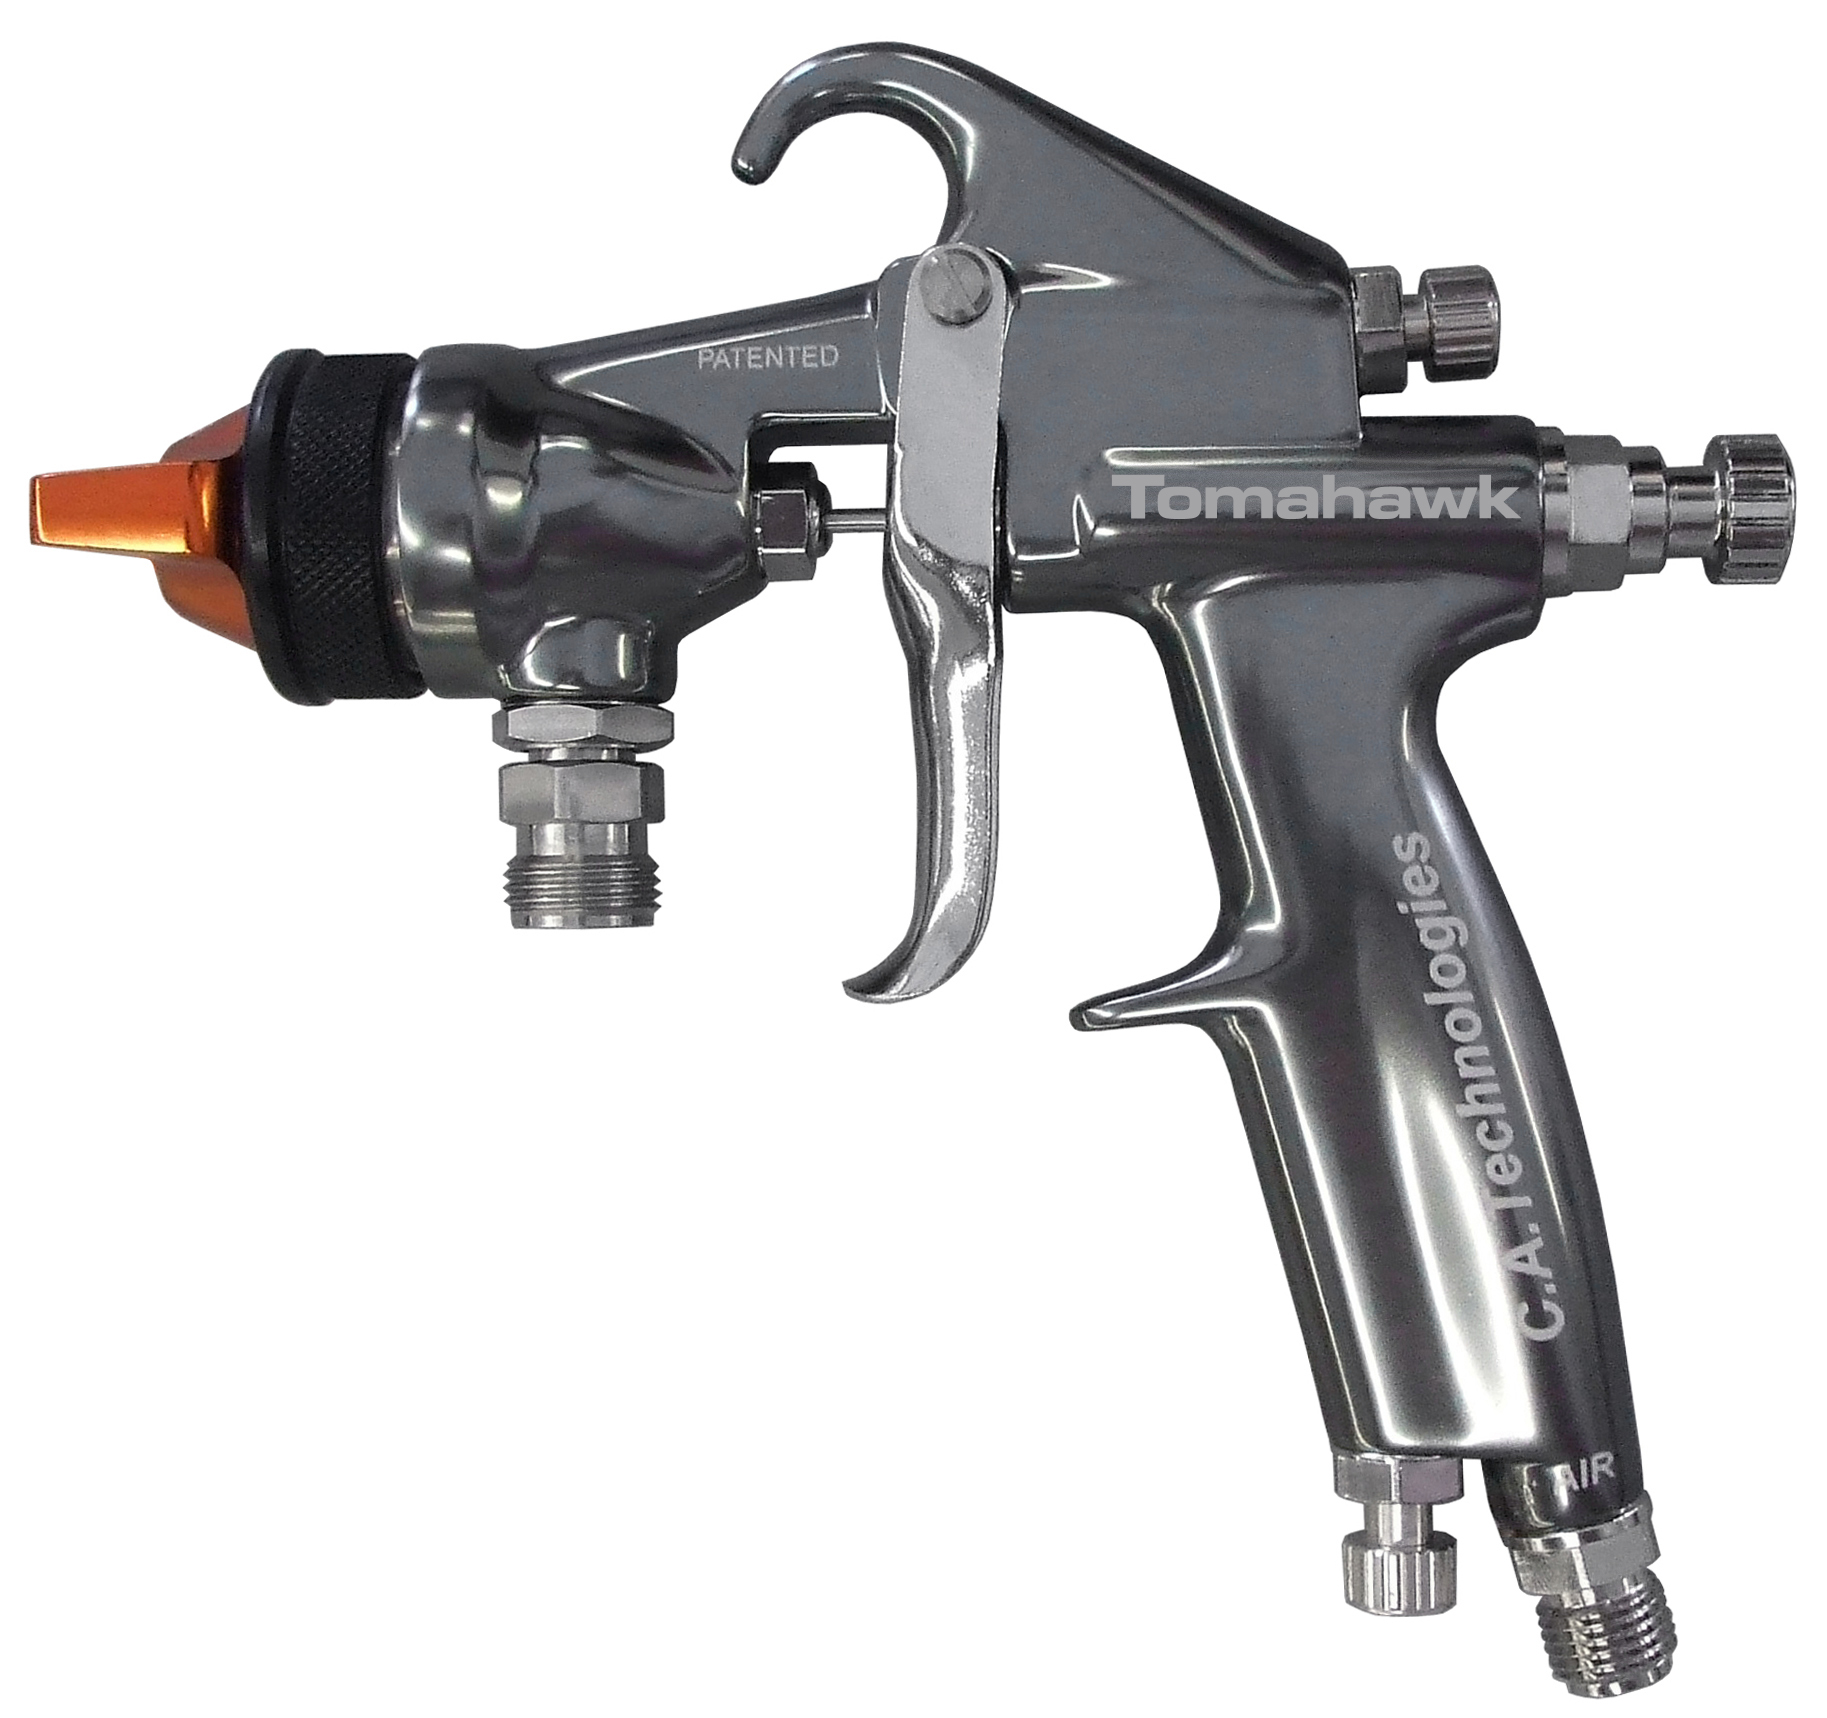 Tomahawk Lightweight Economy Handheld Spray Gun Coating